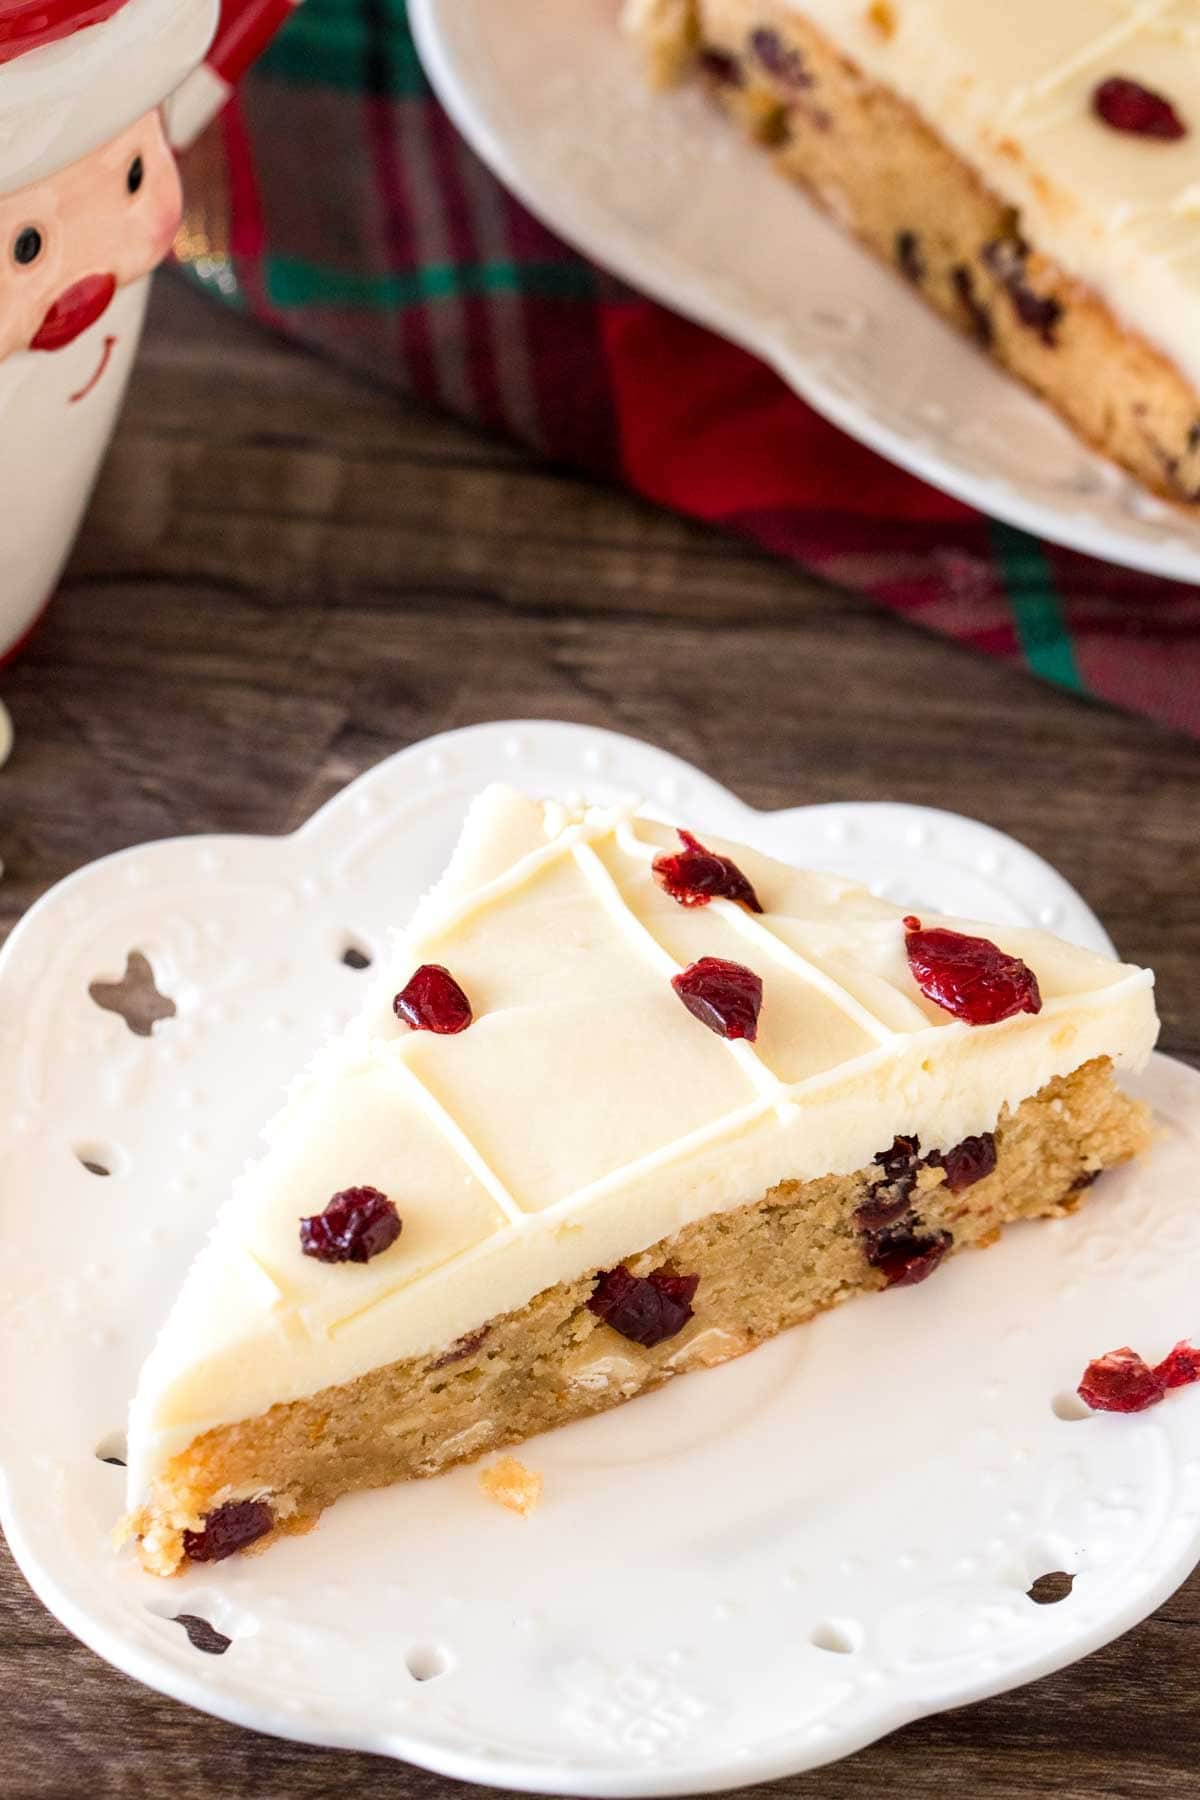 Slice of homemade cranberry bliss bar on a plate.